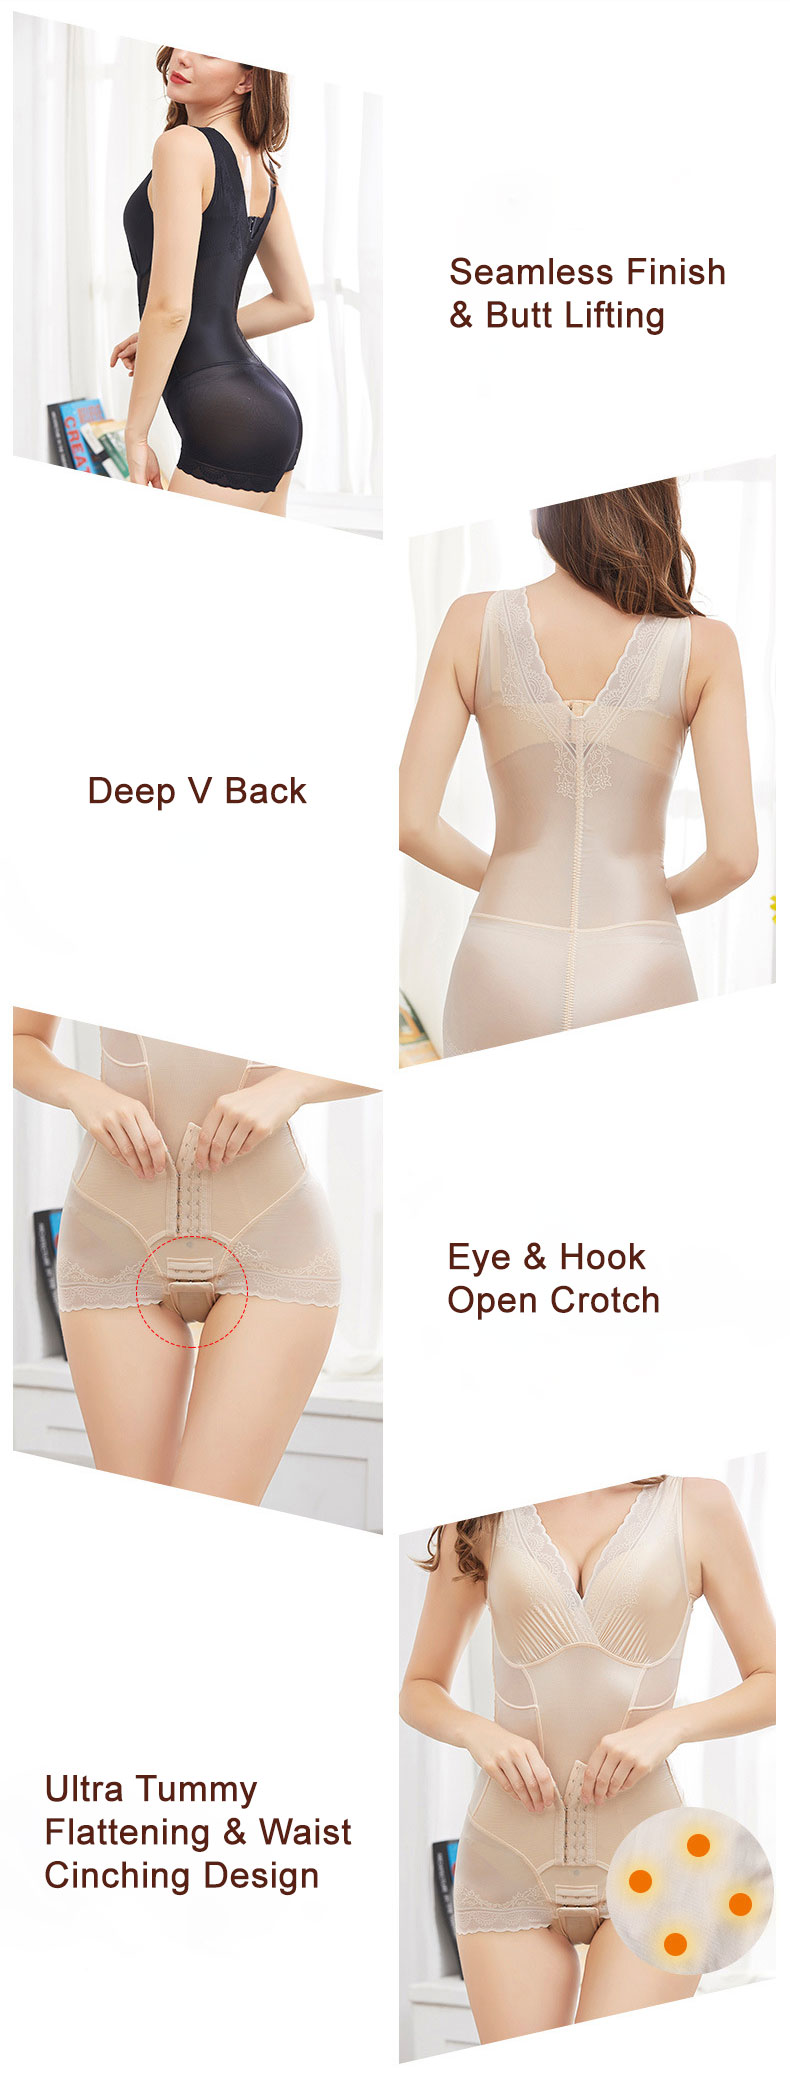 https://www.magicfit.com.au/ultra-waist-cinching-tummy-flattening-butt-lifting-compression-bodysuit.html